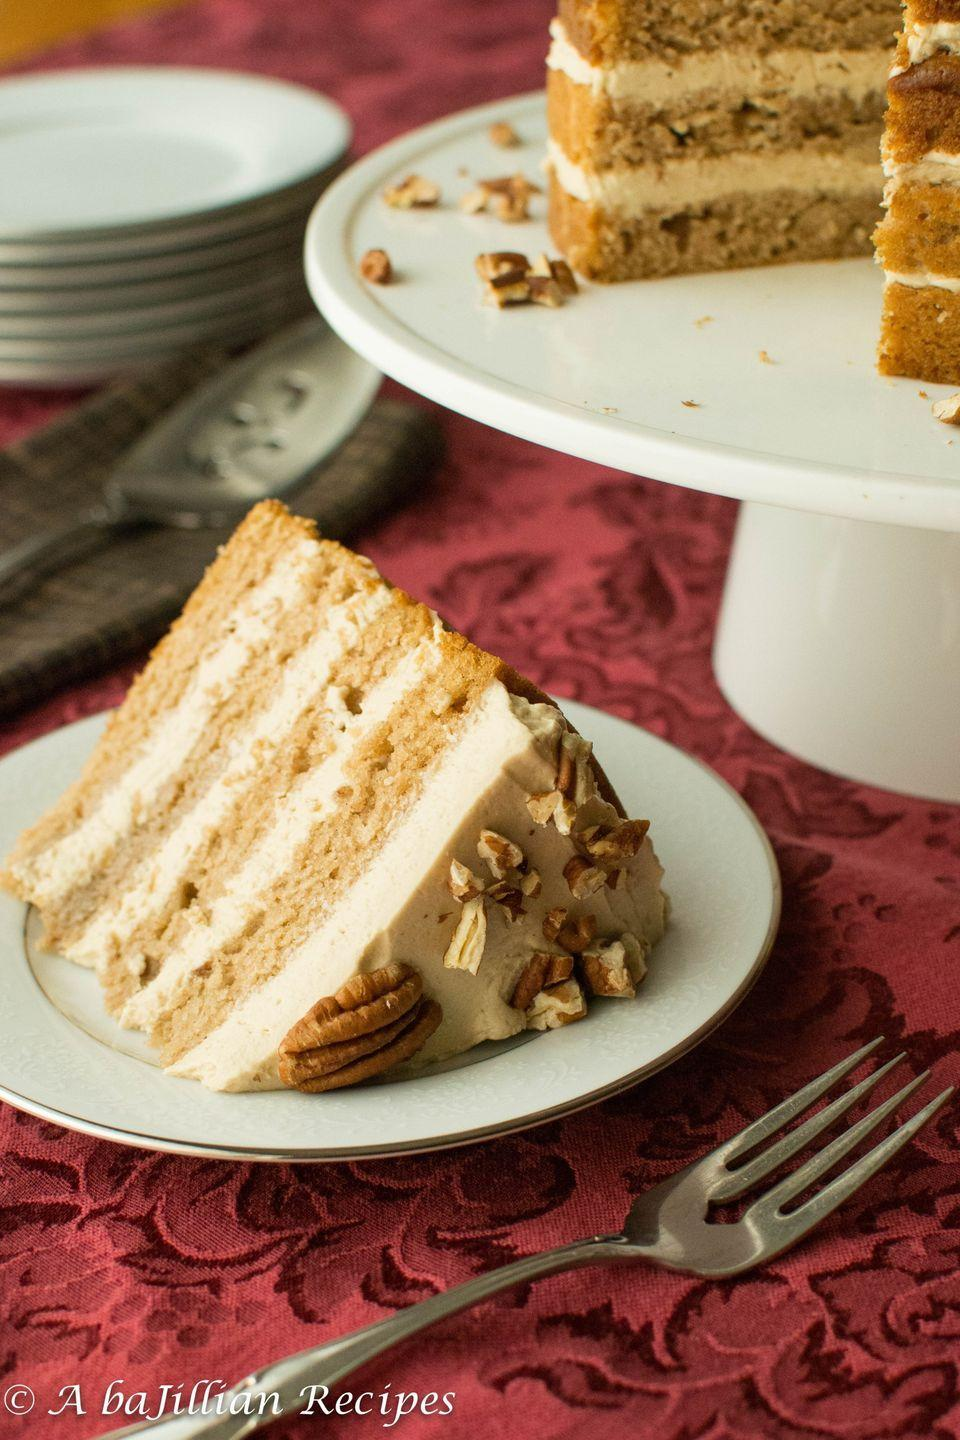 """<p>You know it's good when the frosting is legit as thick as the cake.</p><p>Get the recipe from <a href=""""http://www.abajillianrecipes.com/2015/08/31/fresh-pear-cake/"""" rel=""""nofollow noopener"""" target=""""_blank"""" data-ylk=""""slk:A Bajillian Recipes"""" class=""""link rapid-noclick-resp"""">A Bajillian Recipes</a>.</p>"""